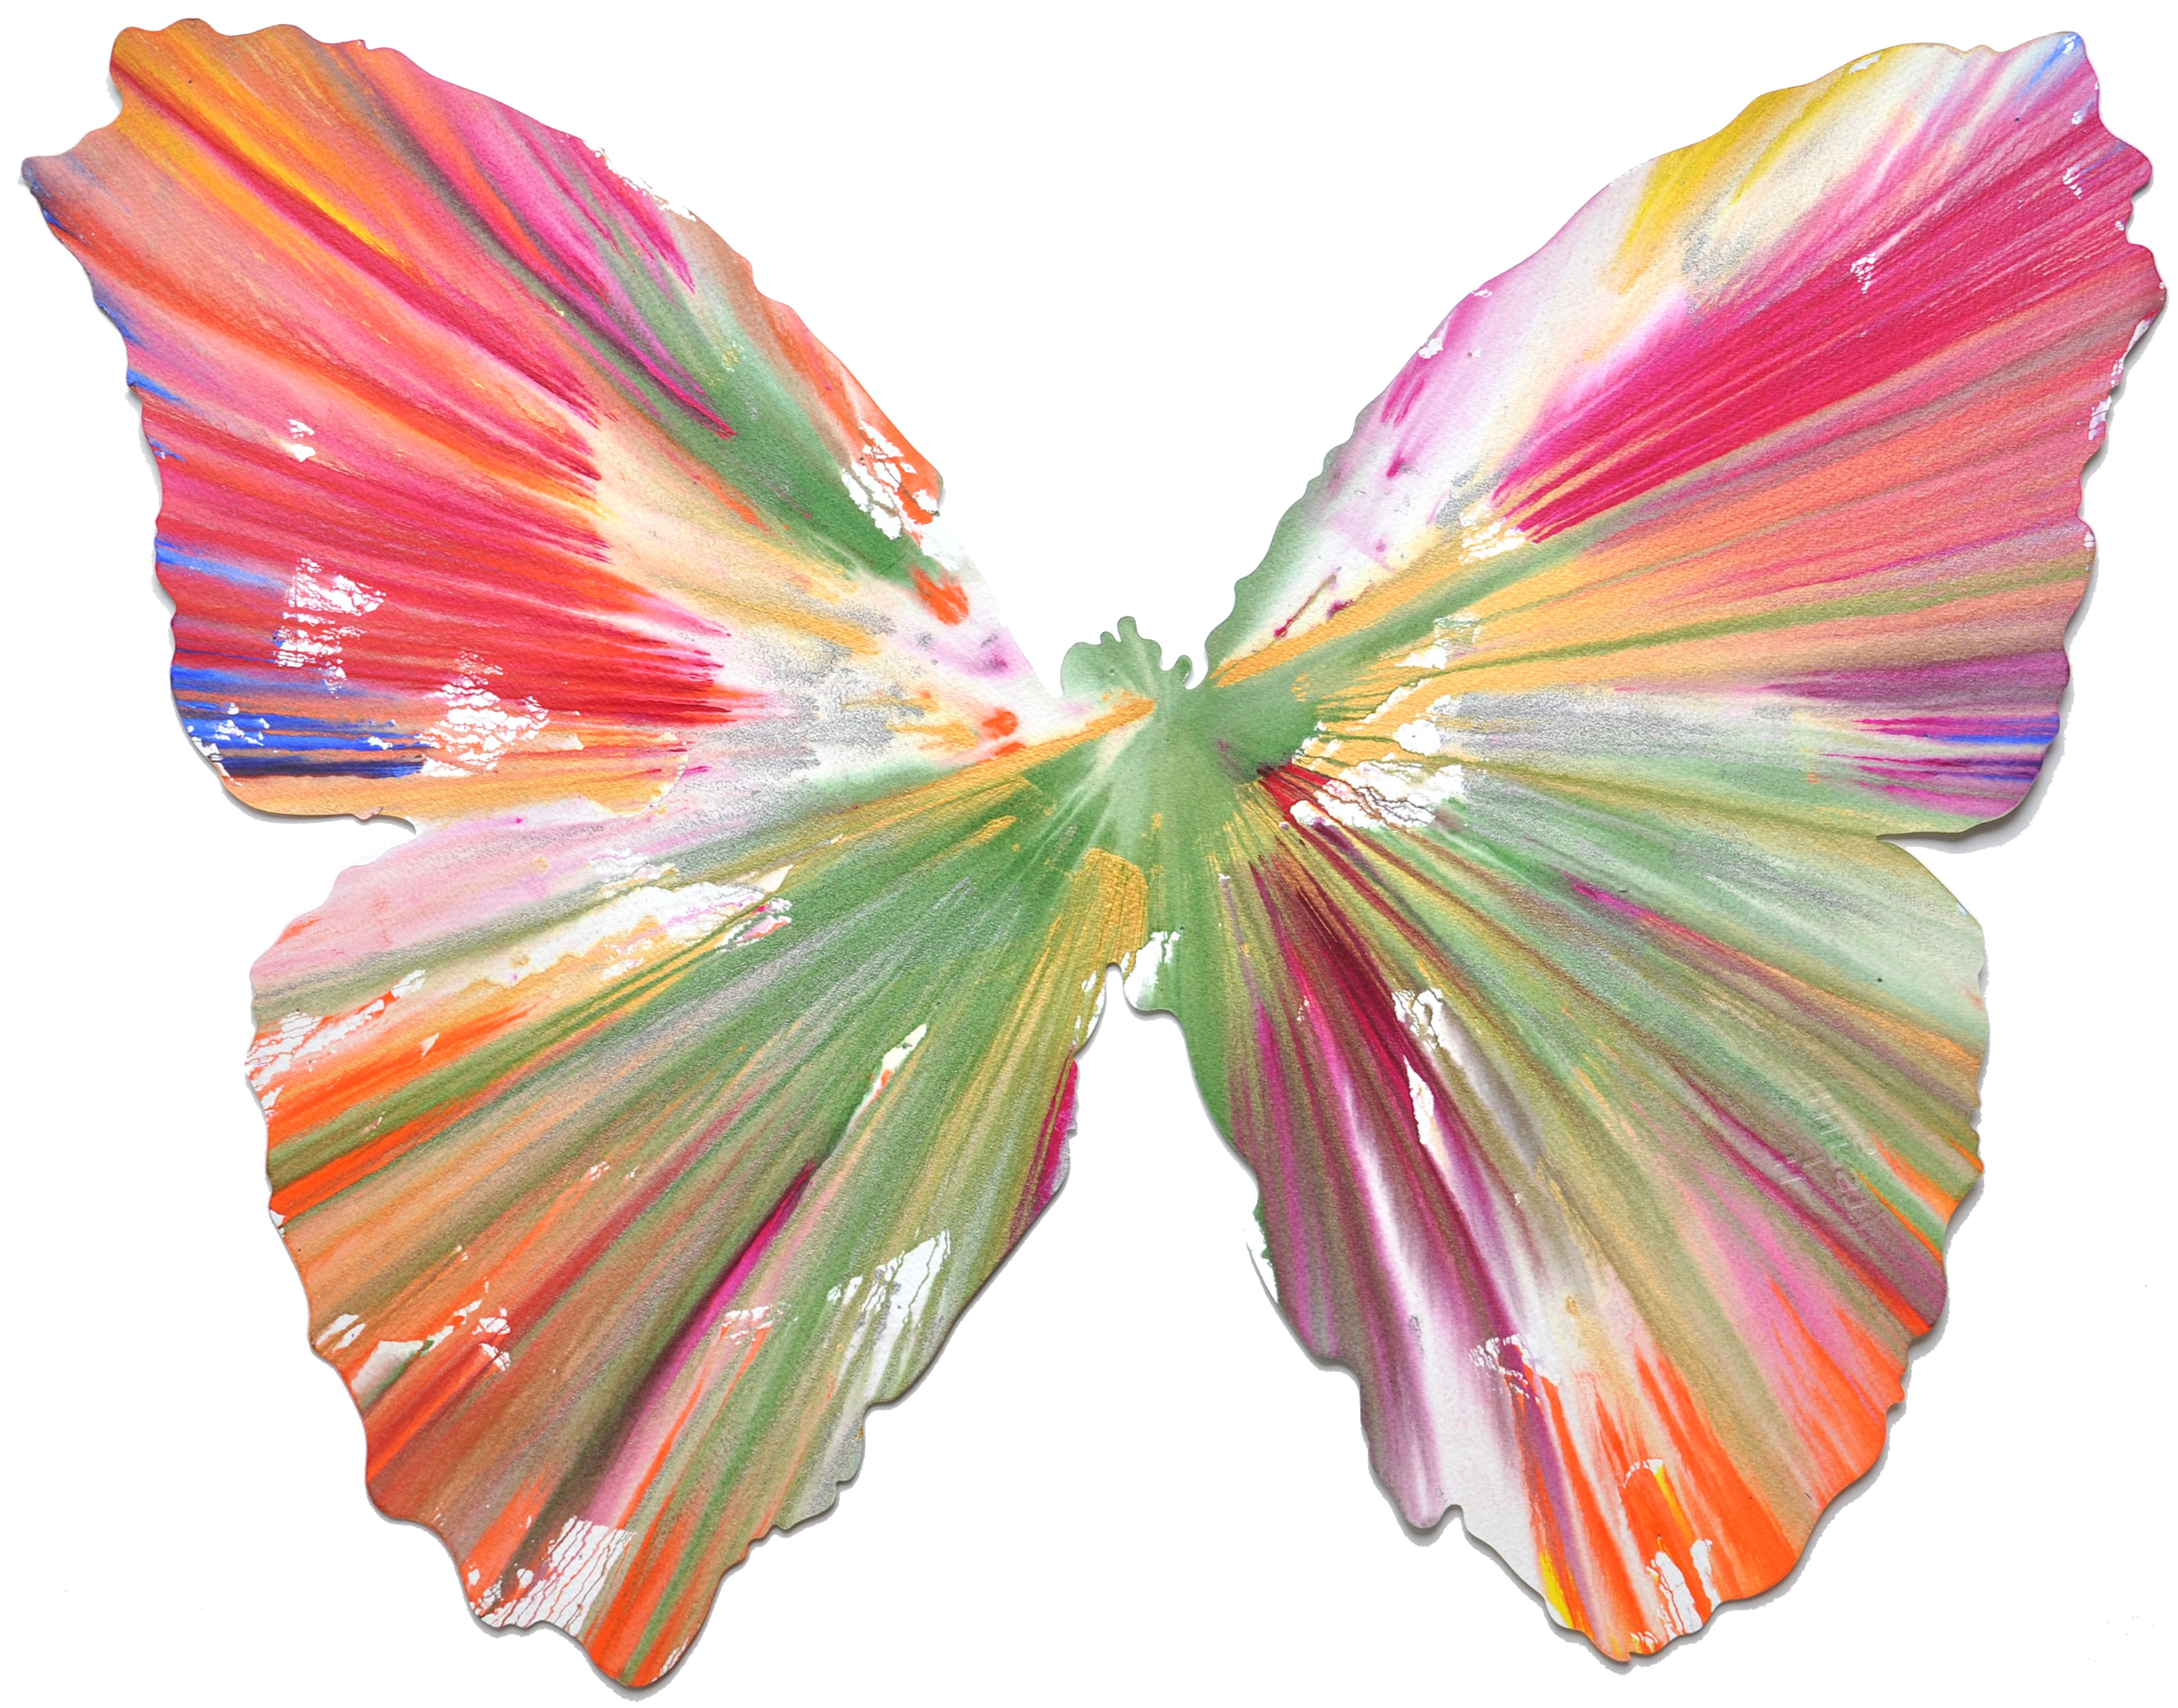 Damien Hirst Png - Butterfly Spin Painting - Damien Hirst | Paddle8